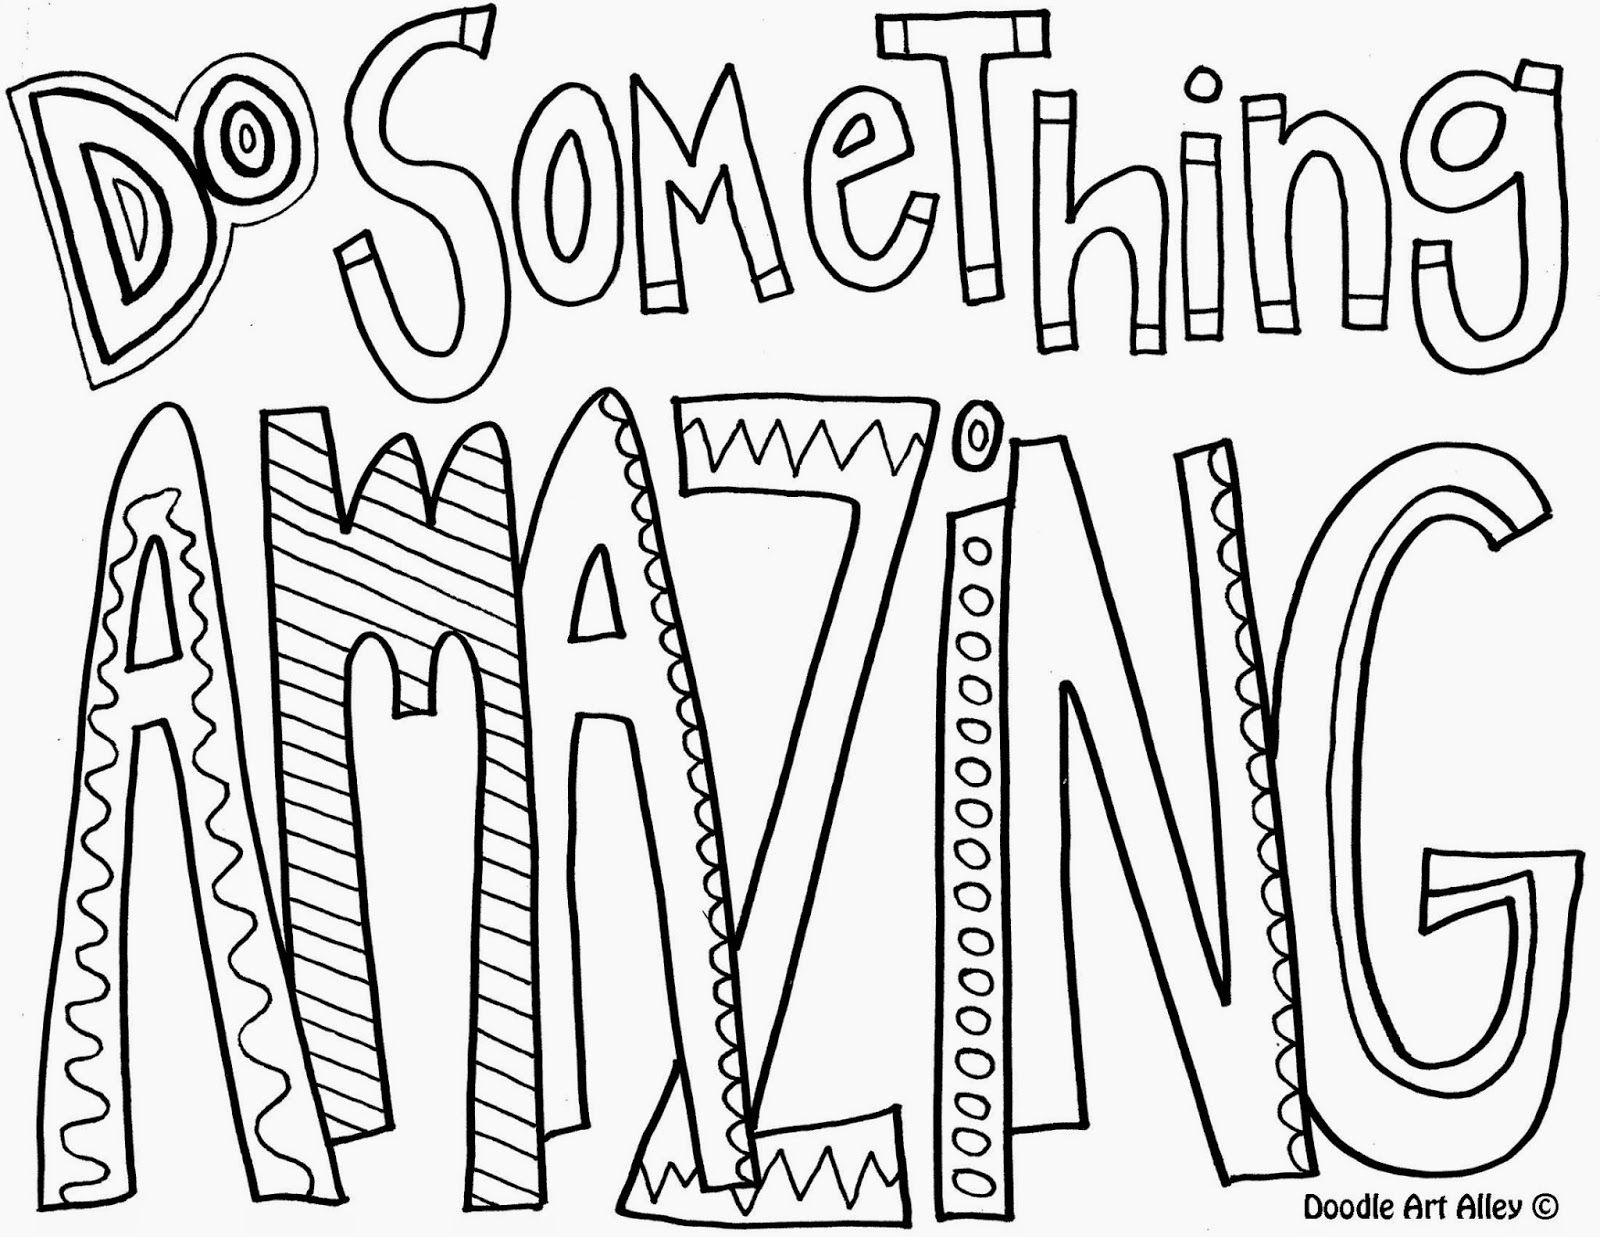 All Quotes Coloring Pages Doodle Art Alley - Coloring Pages For .